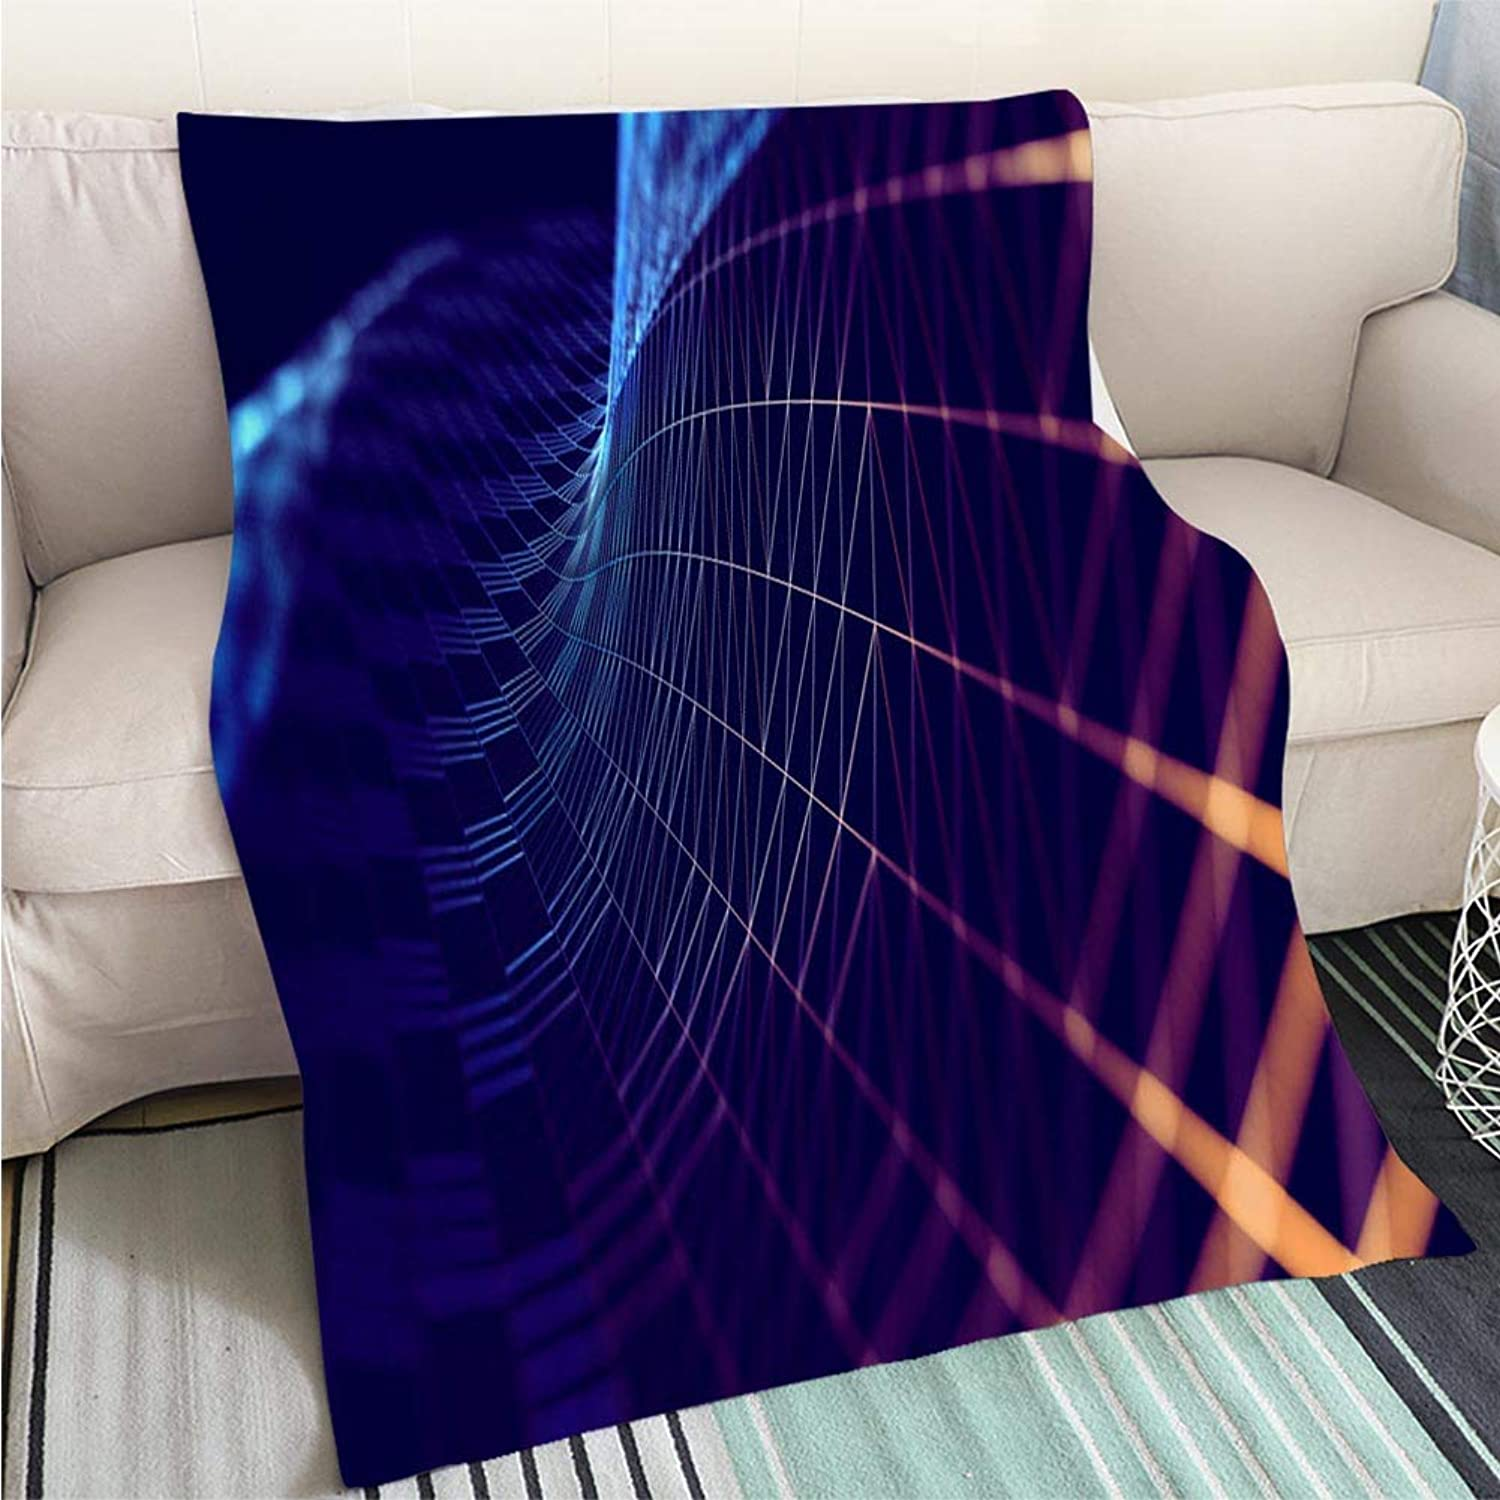 Home Digital Printing Thicken Blanket Mesh or net with Lines and Geometrics Shapes Detail 3D Illustration Perfect for Couch Sofa or Bed Cool Quilt